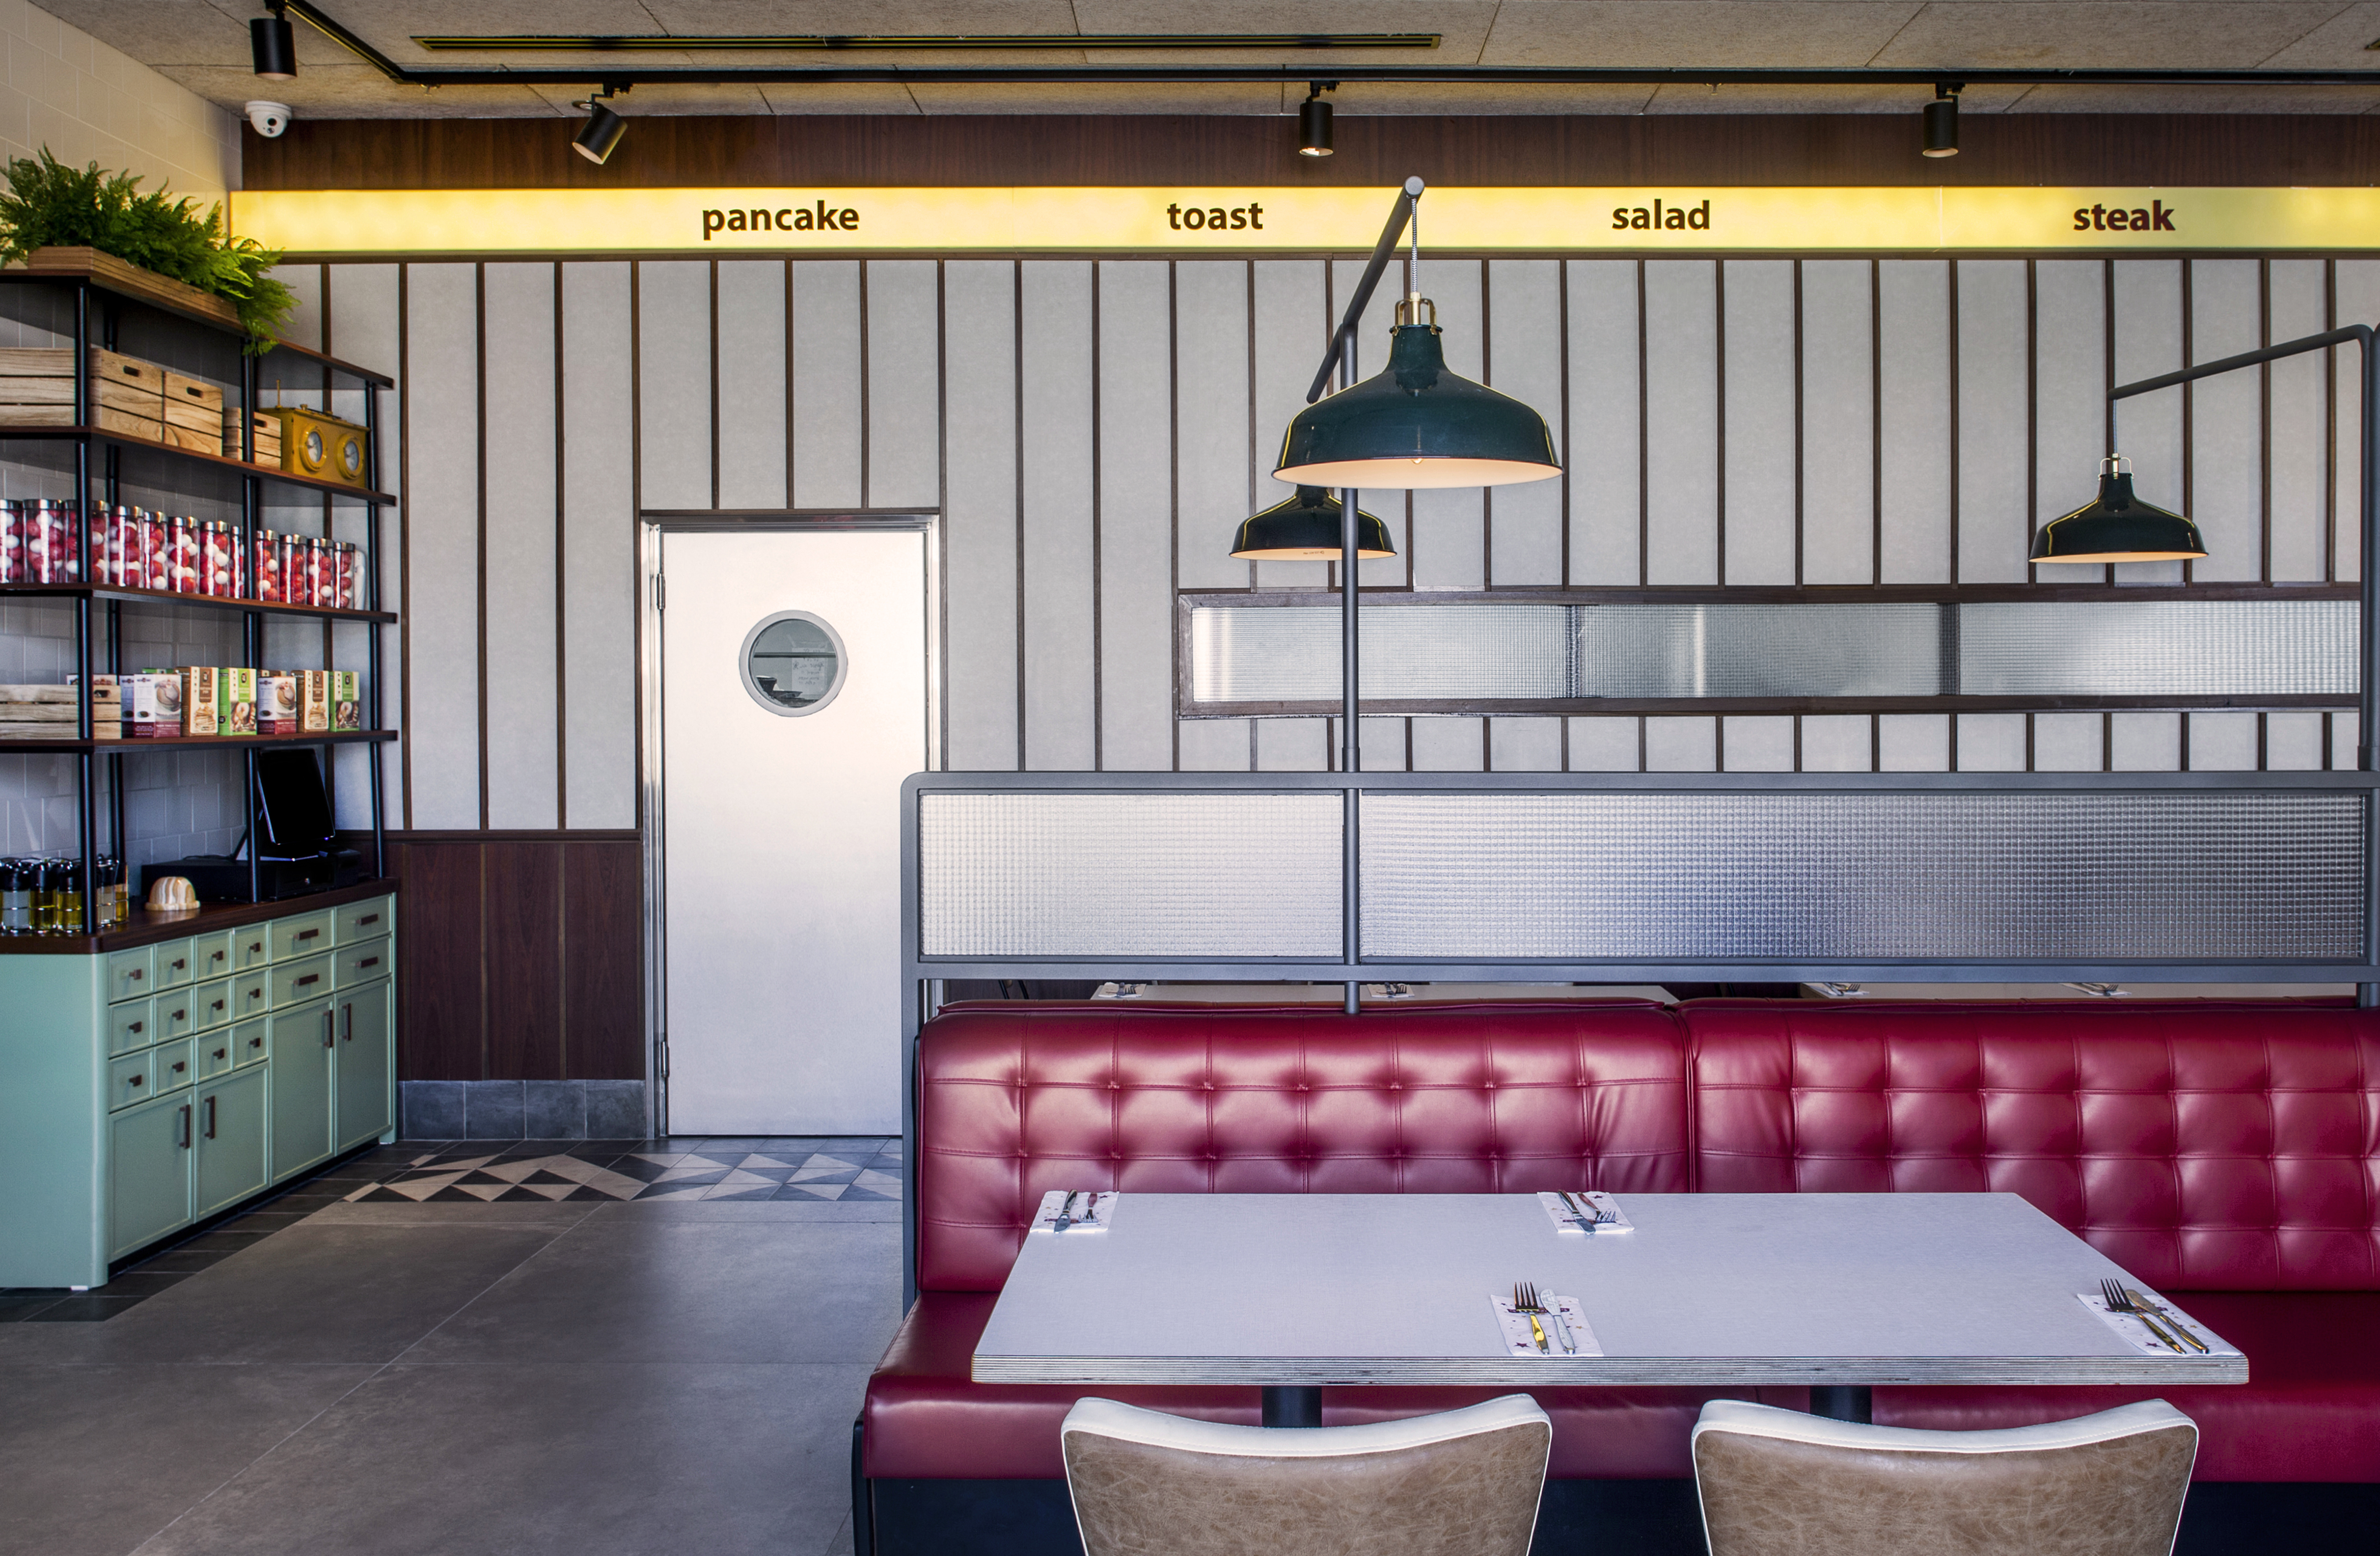 diner wall